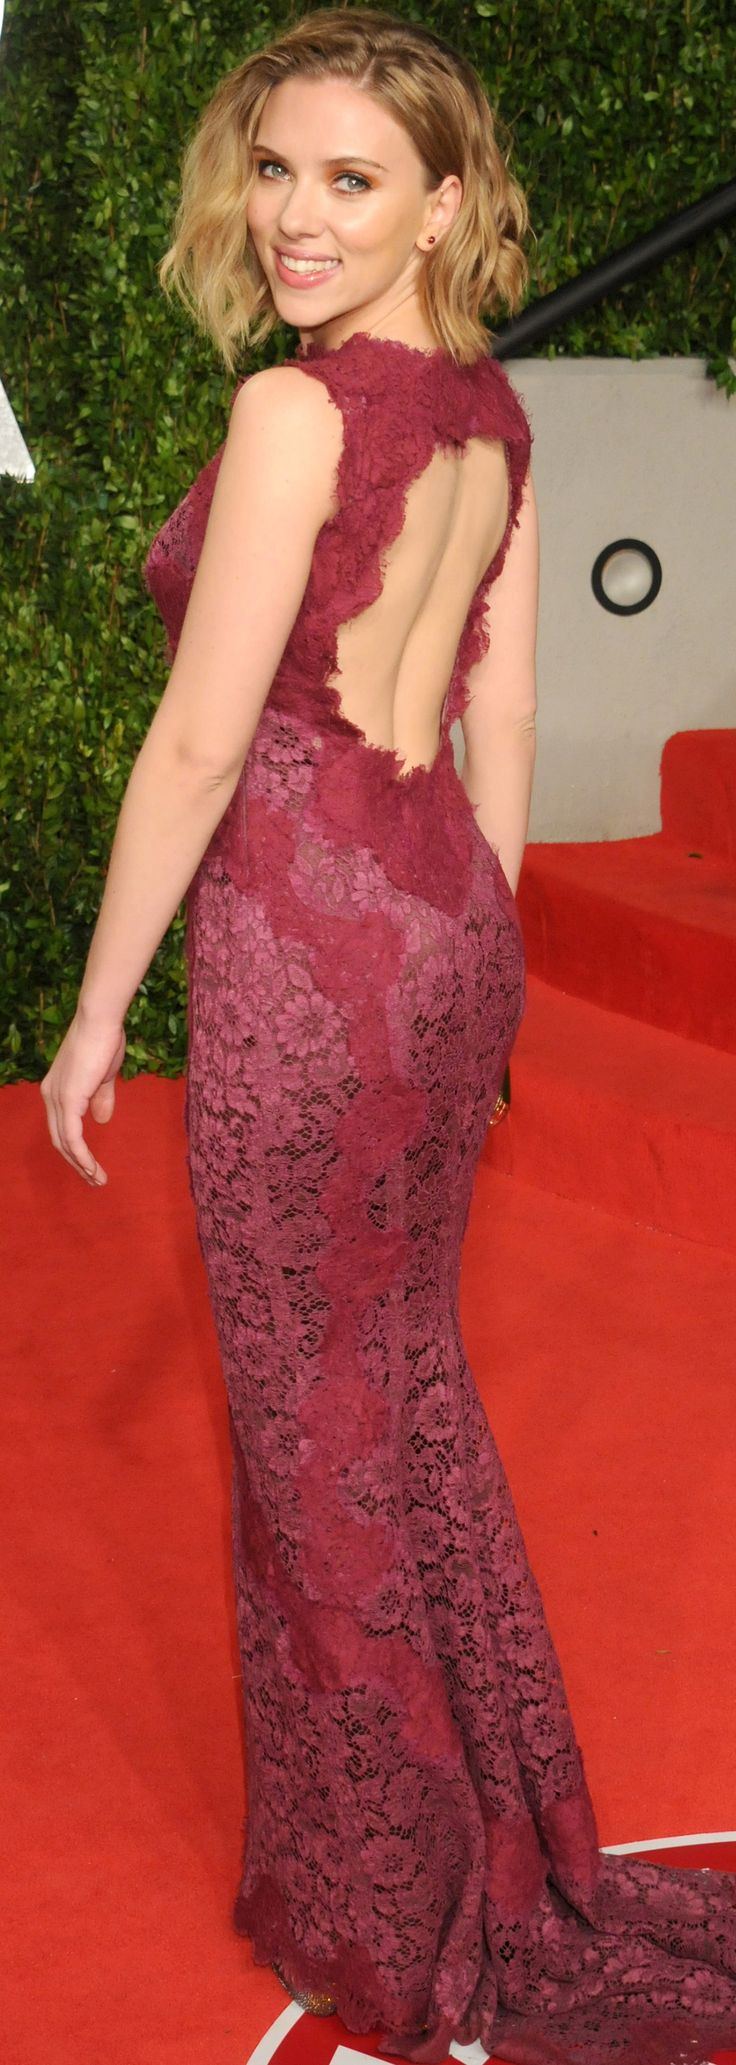 Scarlett Johansson's lace gown was extra sexy with an open keyhole back